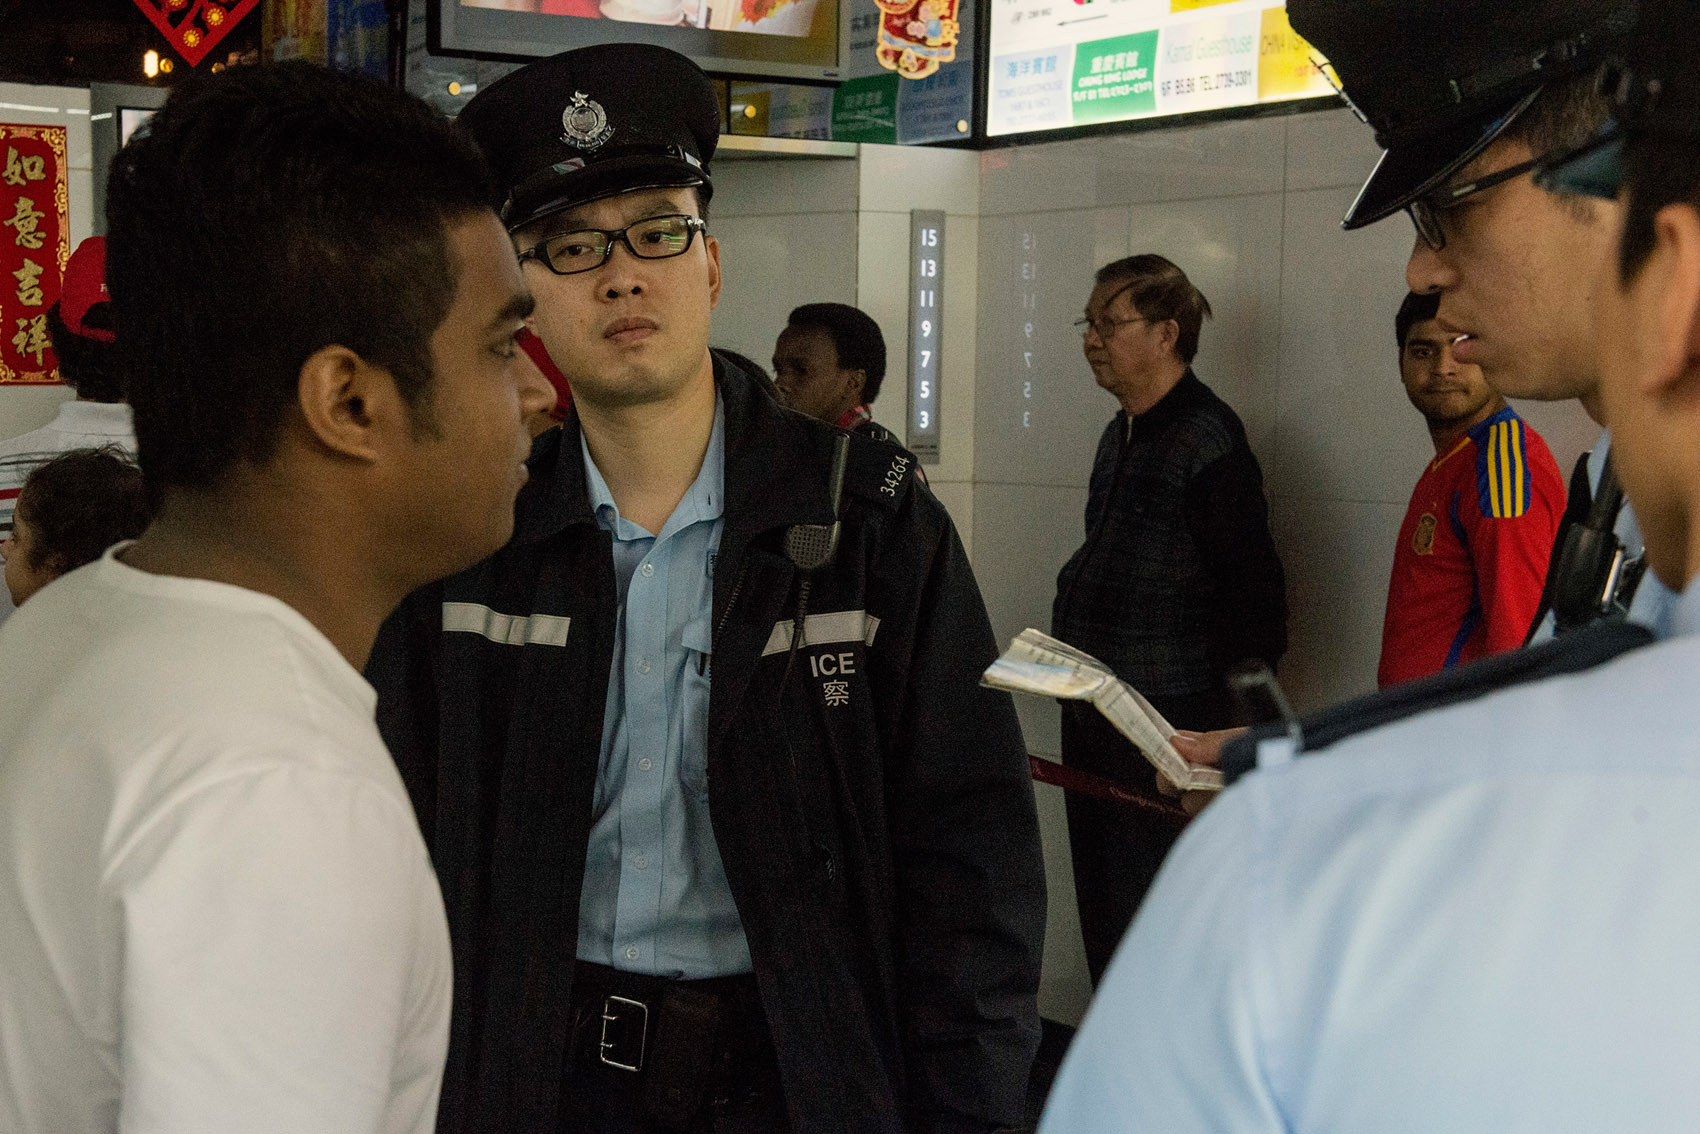 The Hong Kong police during an ID check at the Chungking Mansions. Such operations occur daily at the Mansions, where number of illegal immigrants reside. Many other residents or workers of the Mansions have applied for political asylum. However their application can take years to be processed during which they have no rights to work. Many do so but have to hide from the police.